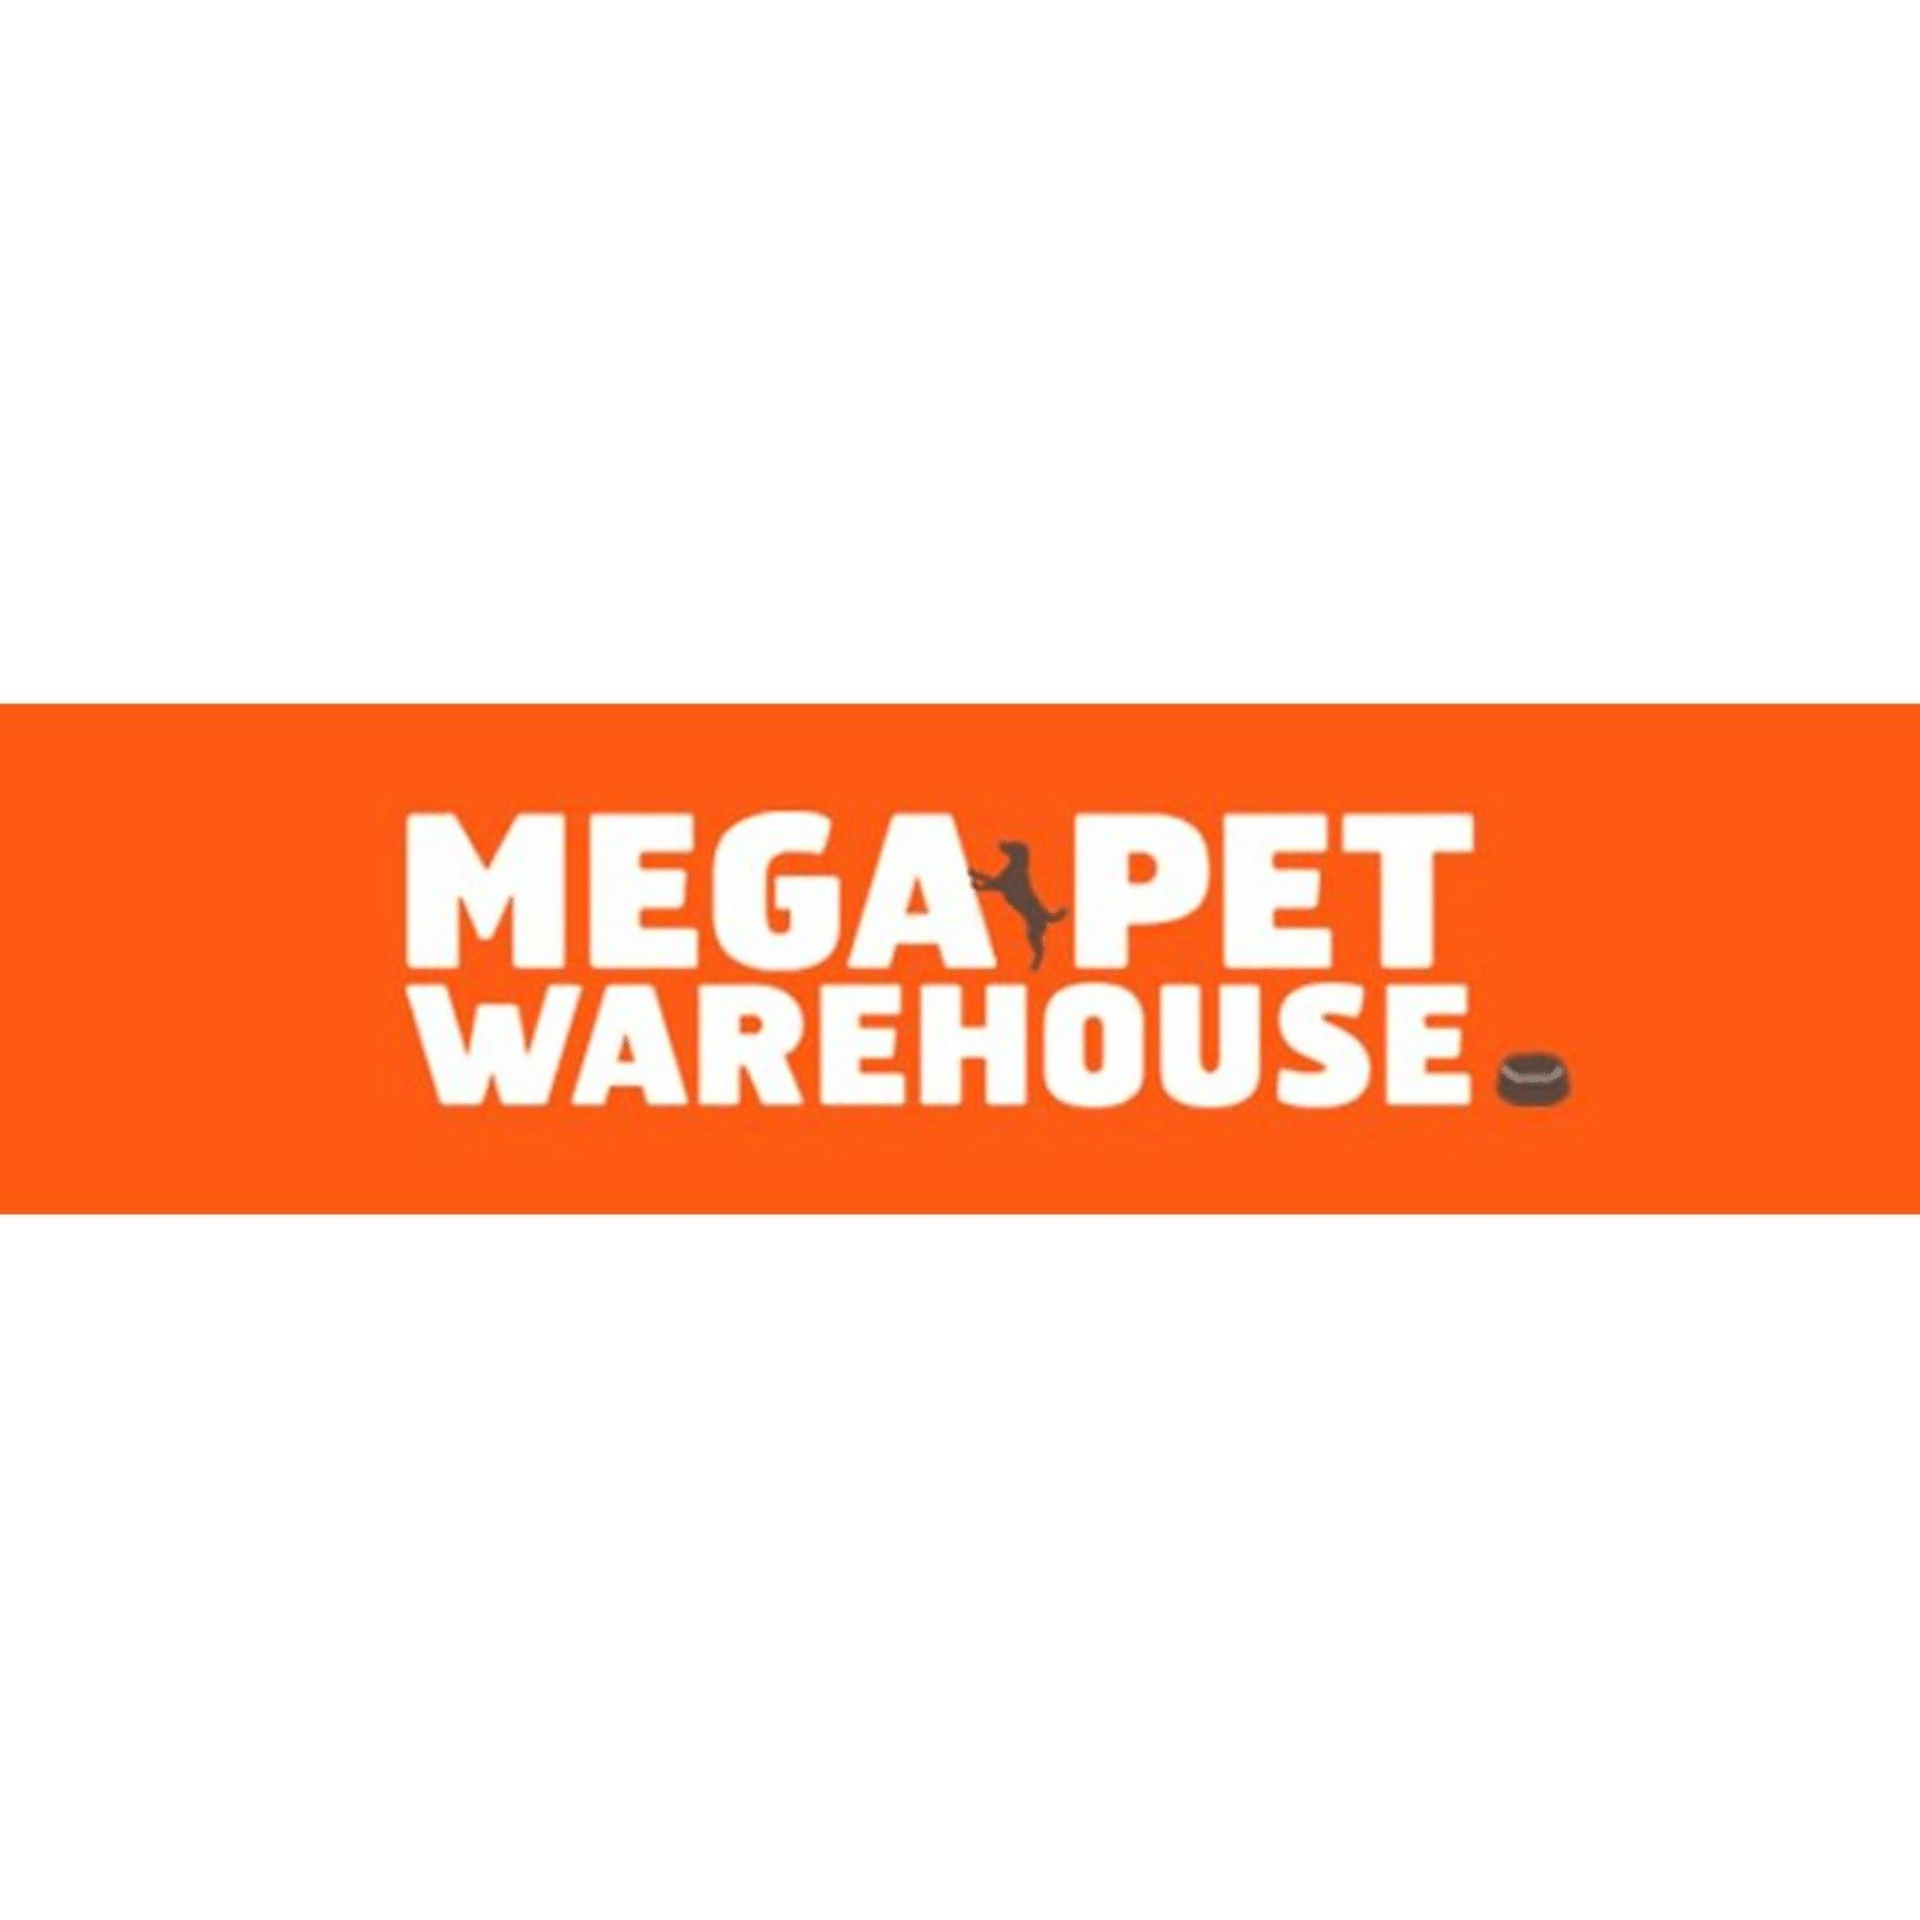 Mega Pet Warehouse Logo 1920 by 1920 px